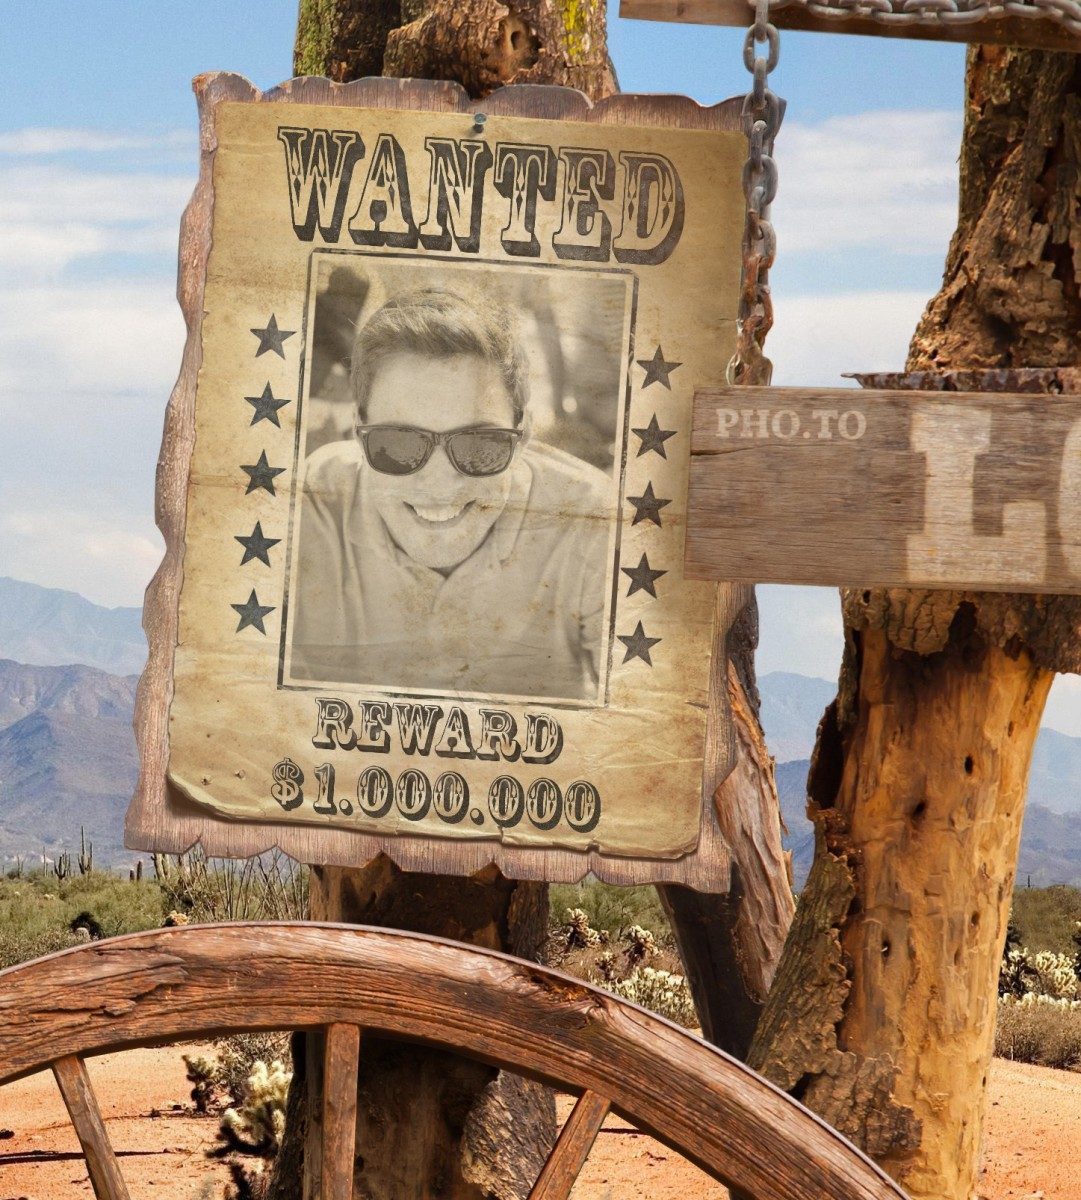 A photo of a cool guy processed with Wanted Poster photo template